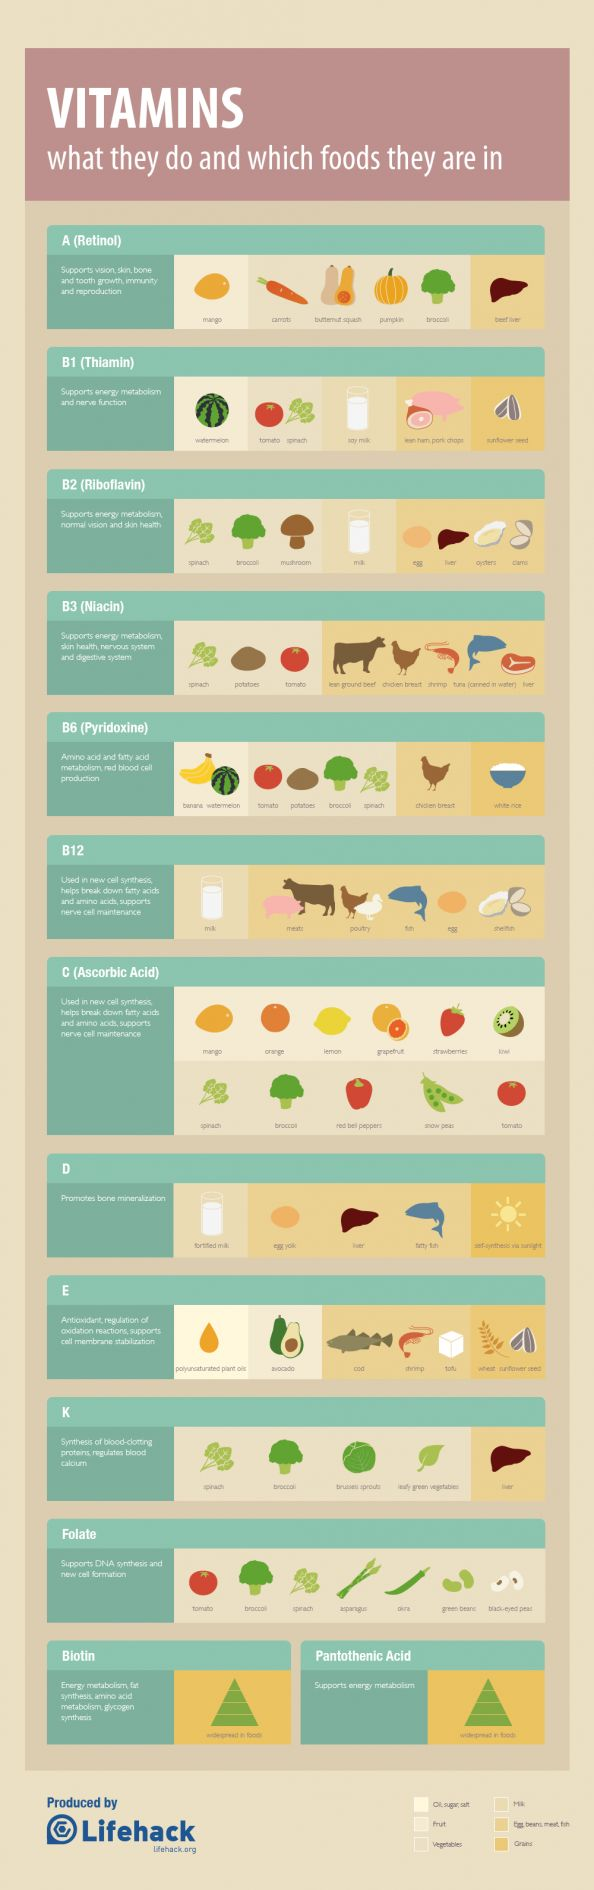 Vitamins. What they do and which foods they are in. #nutrition #vitamins #infographics